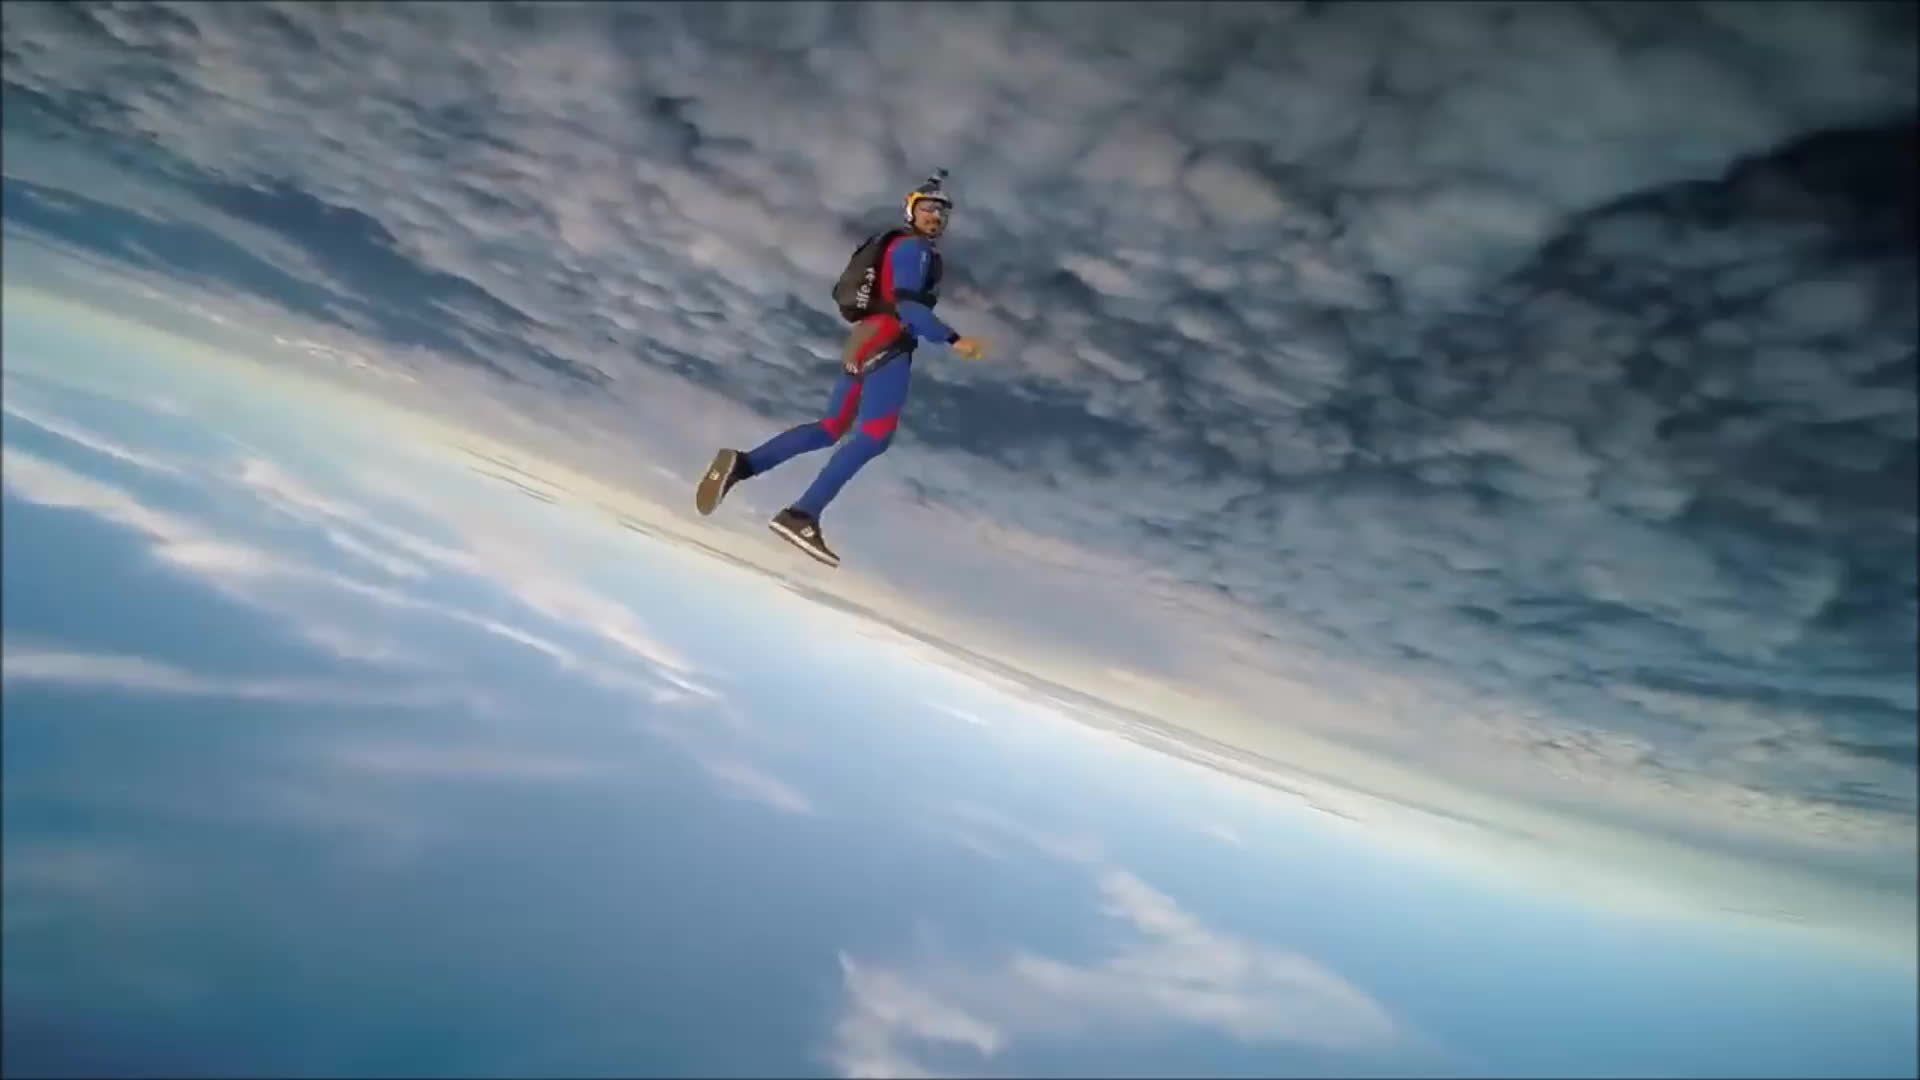 AdrenalinePorn, ConfusingGravity, holdmyredbull, Playing catch (https://www.youtube.com/watch?v=Wc_bXQbsZd0) GIFs